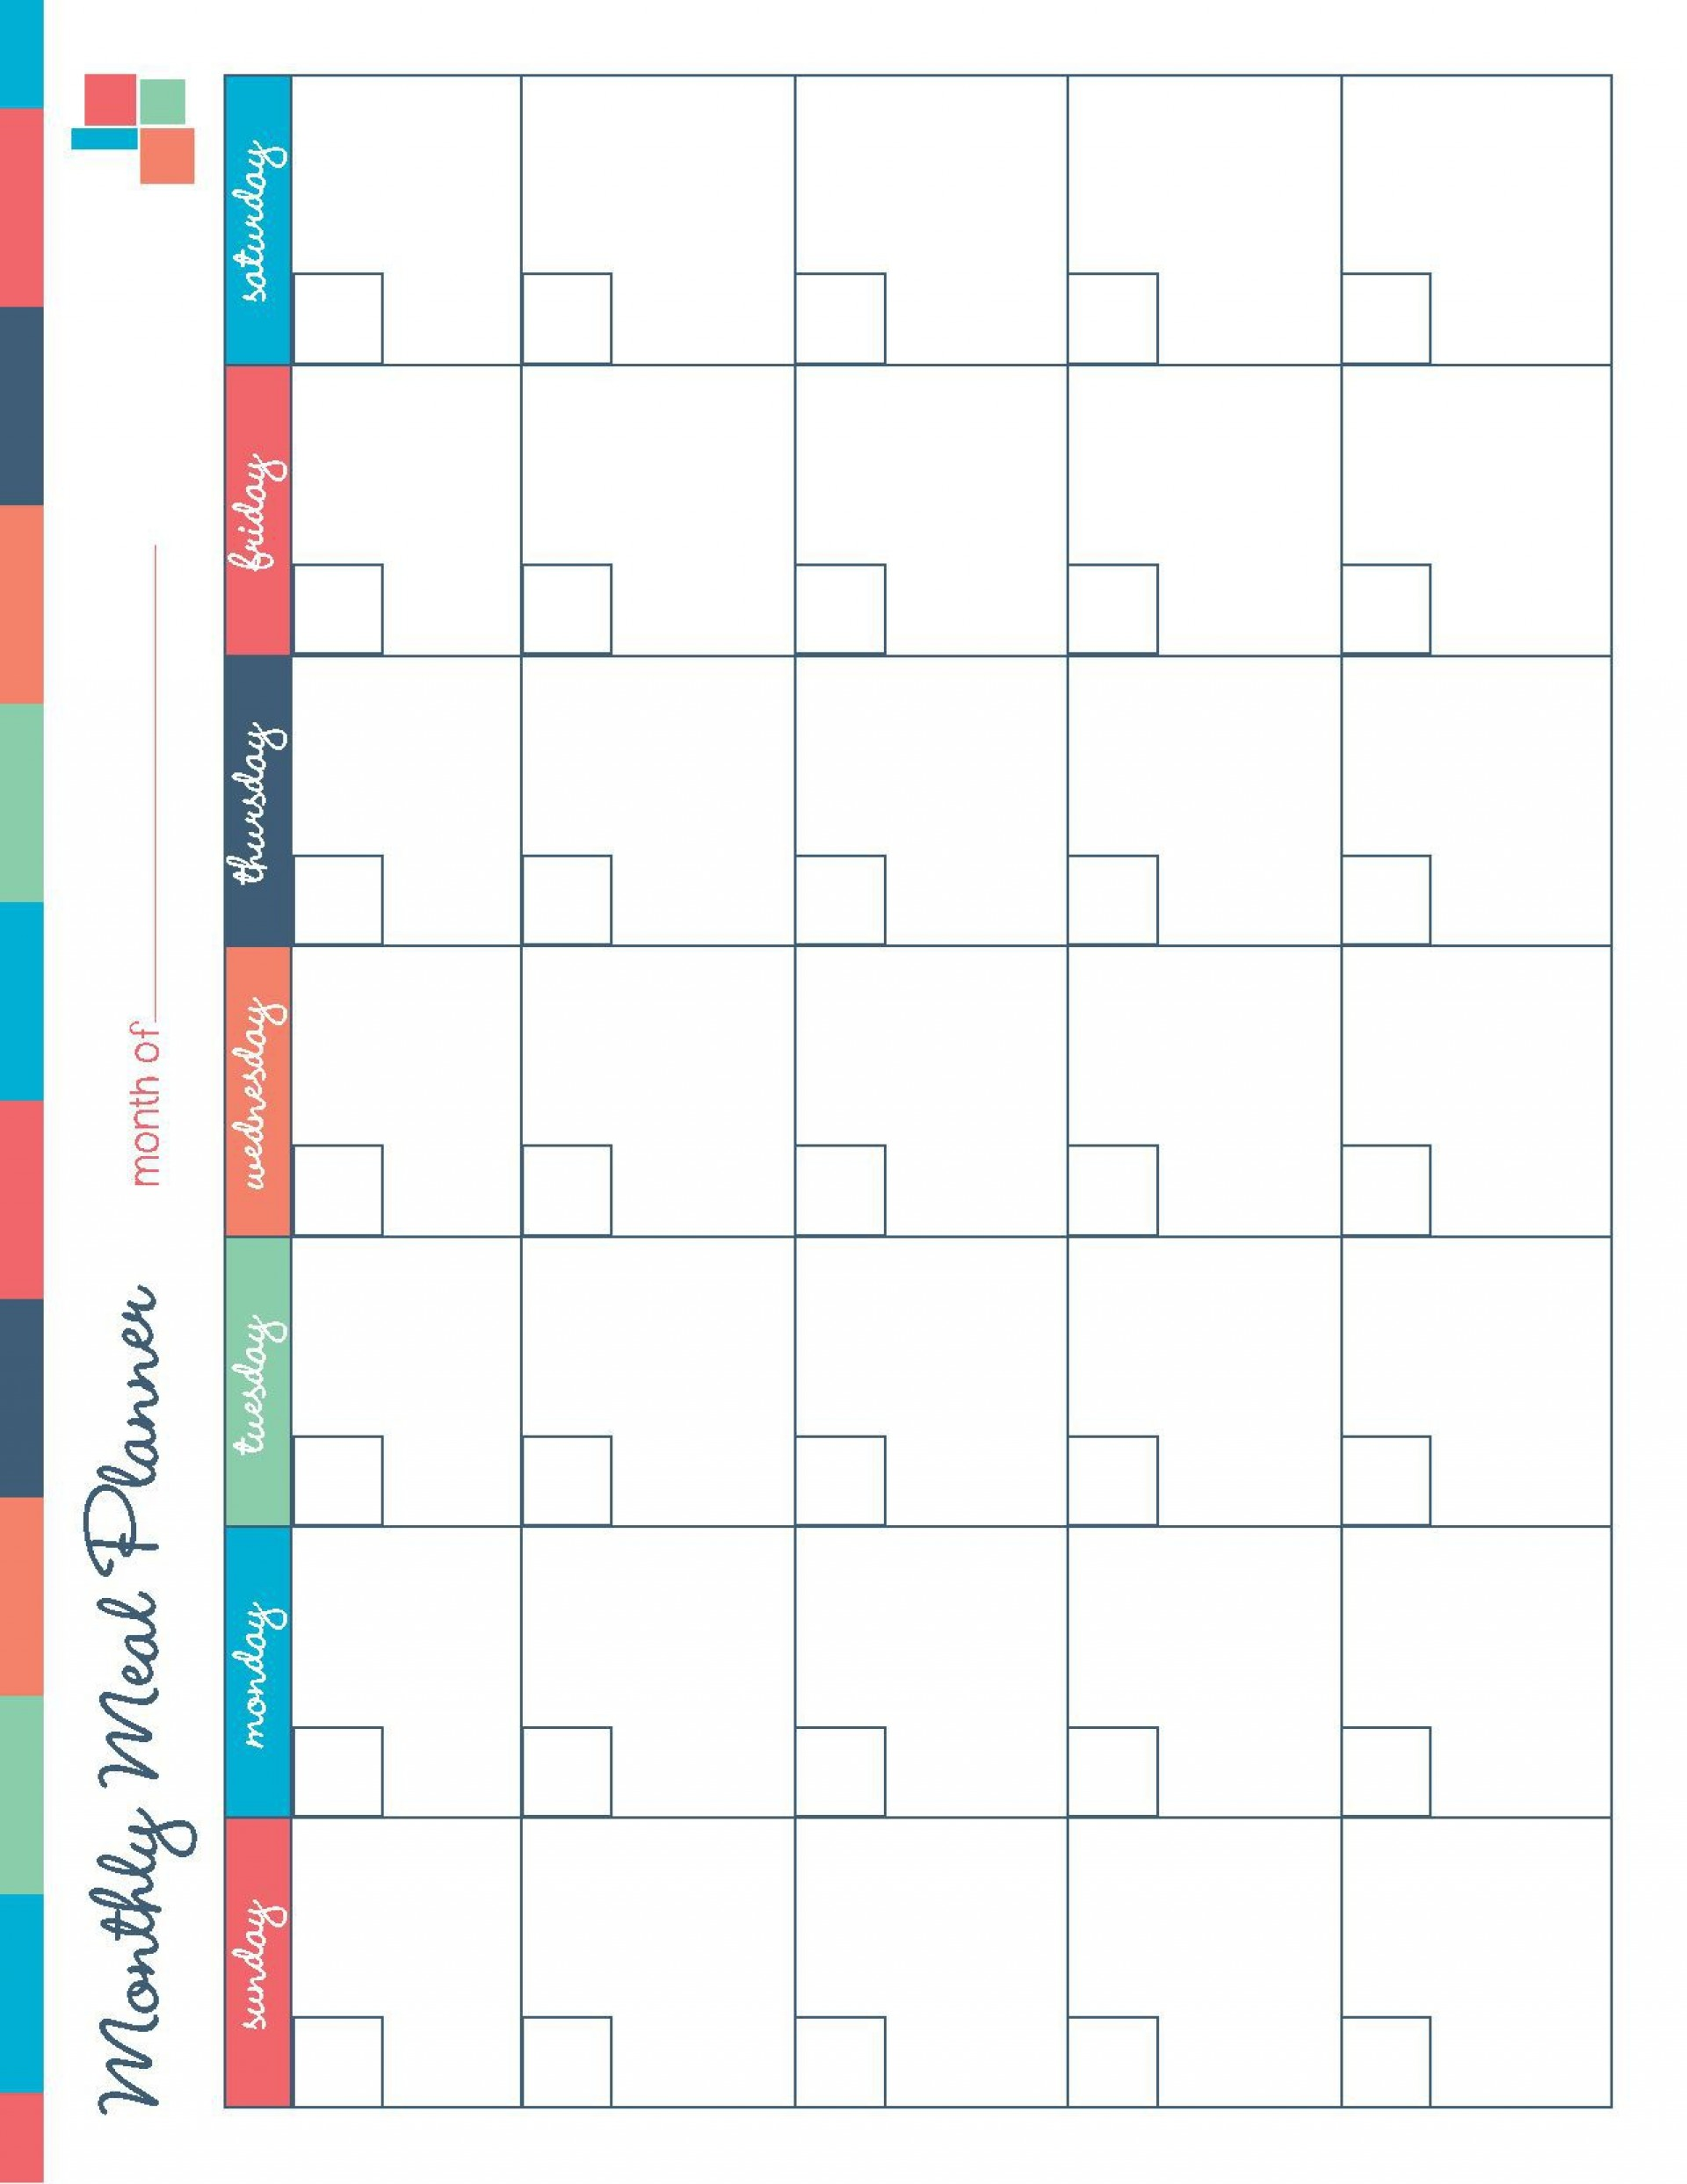 001 Breathtaking Meal Plan Calendar Template Highest Clarity  Excel Weekly 30 Day1920